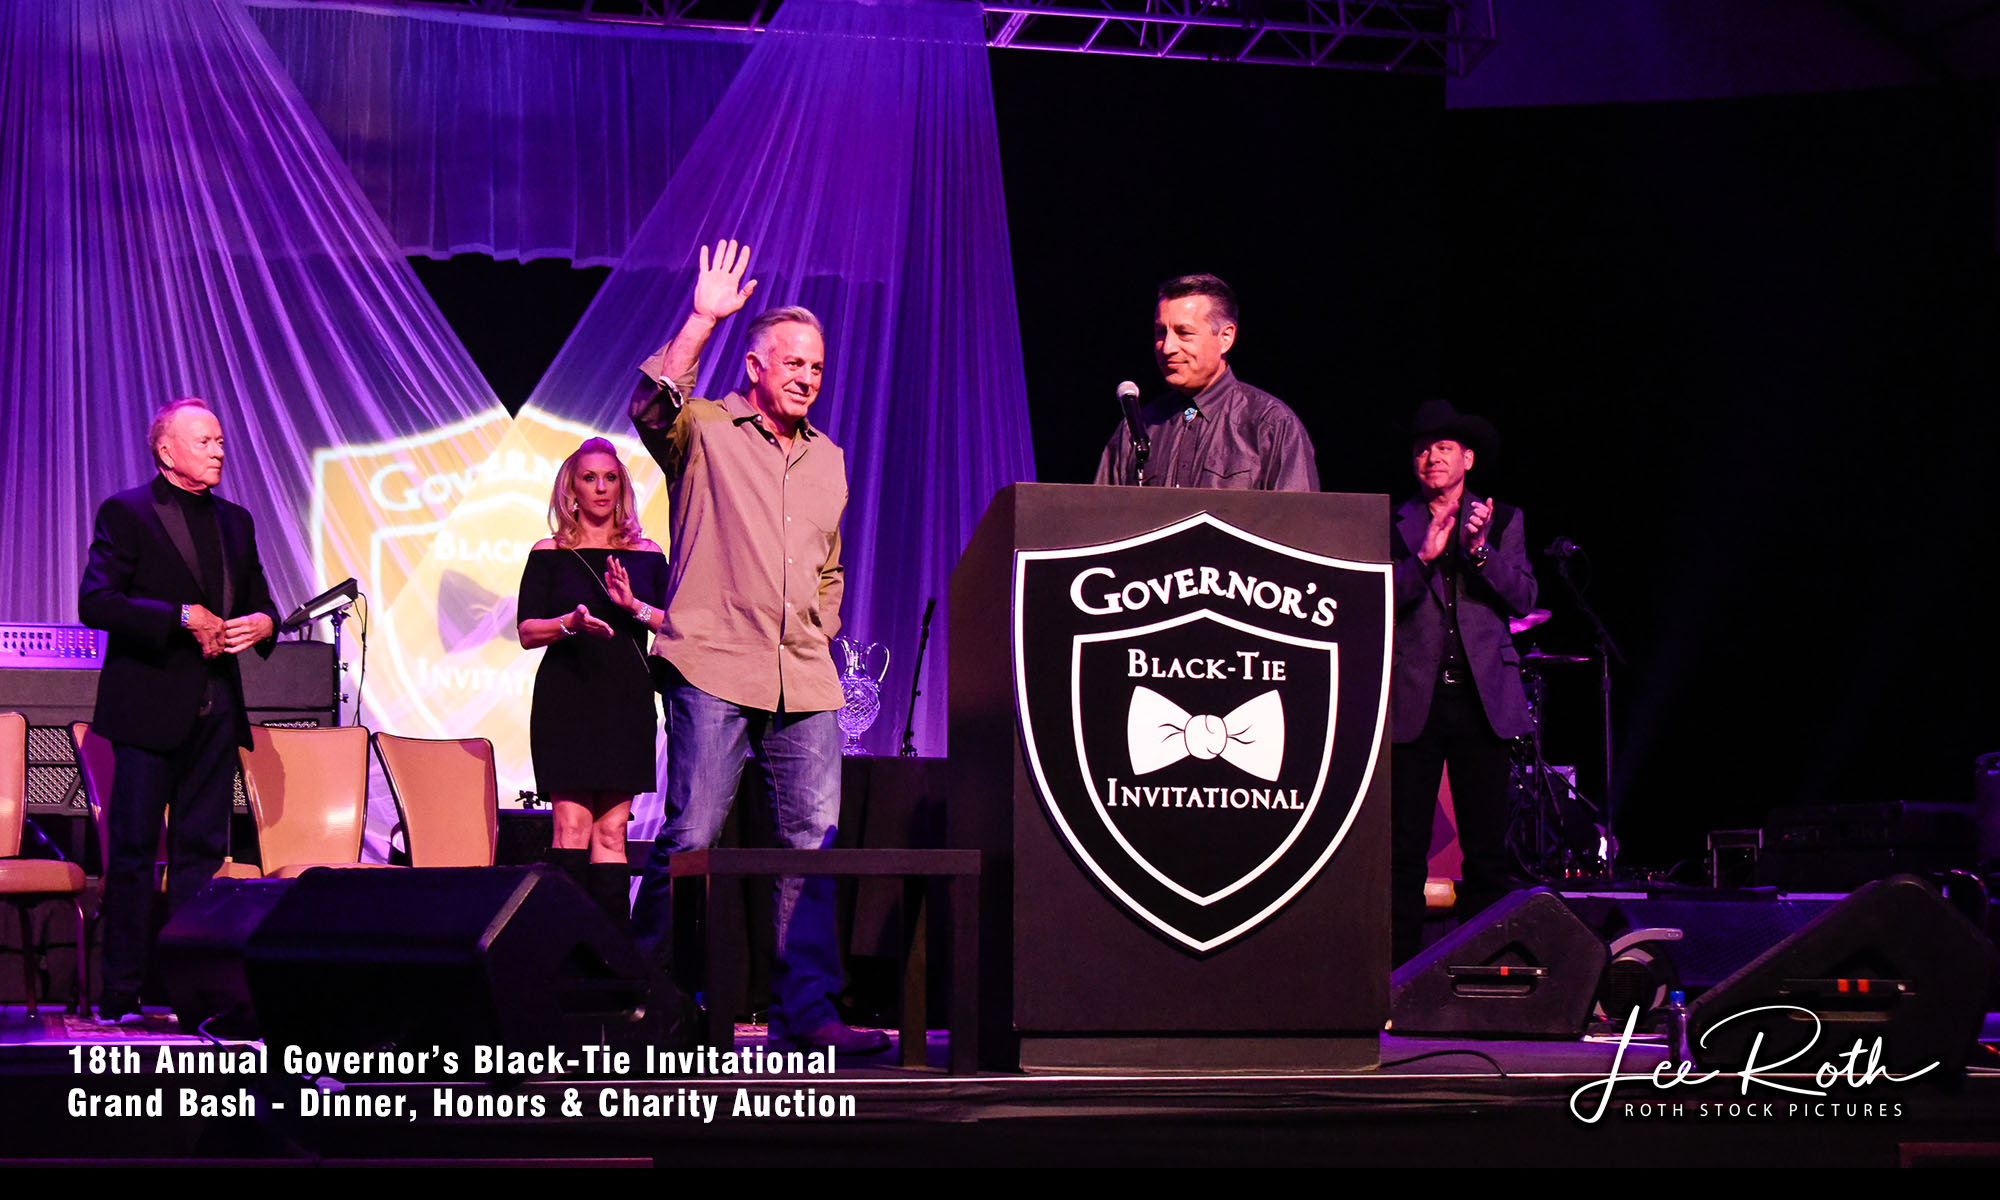 18th Annual Governor's Black Tie Invitational Grand Bash